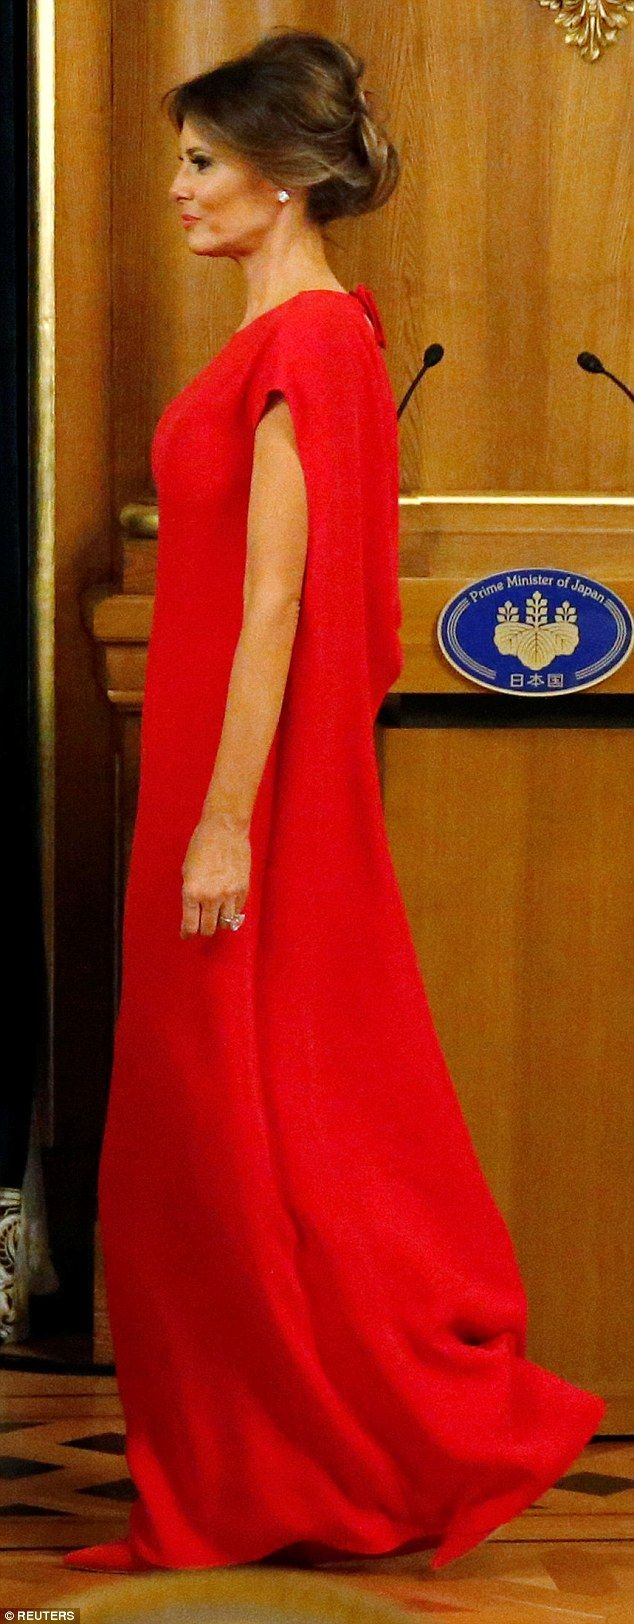 Official: Melania Trump cut a glamorous silhouette as she joined a state banquet in Tokyo on Monday night, amid her and her husband's 12-day trip around Asia